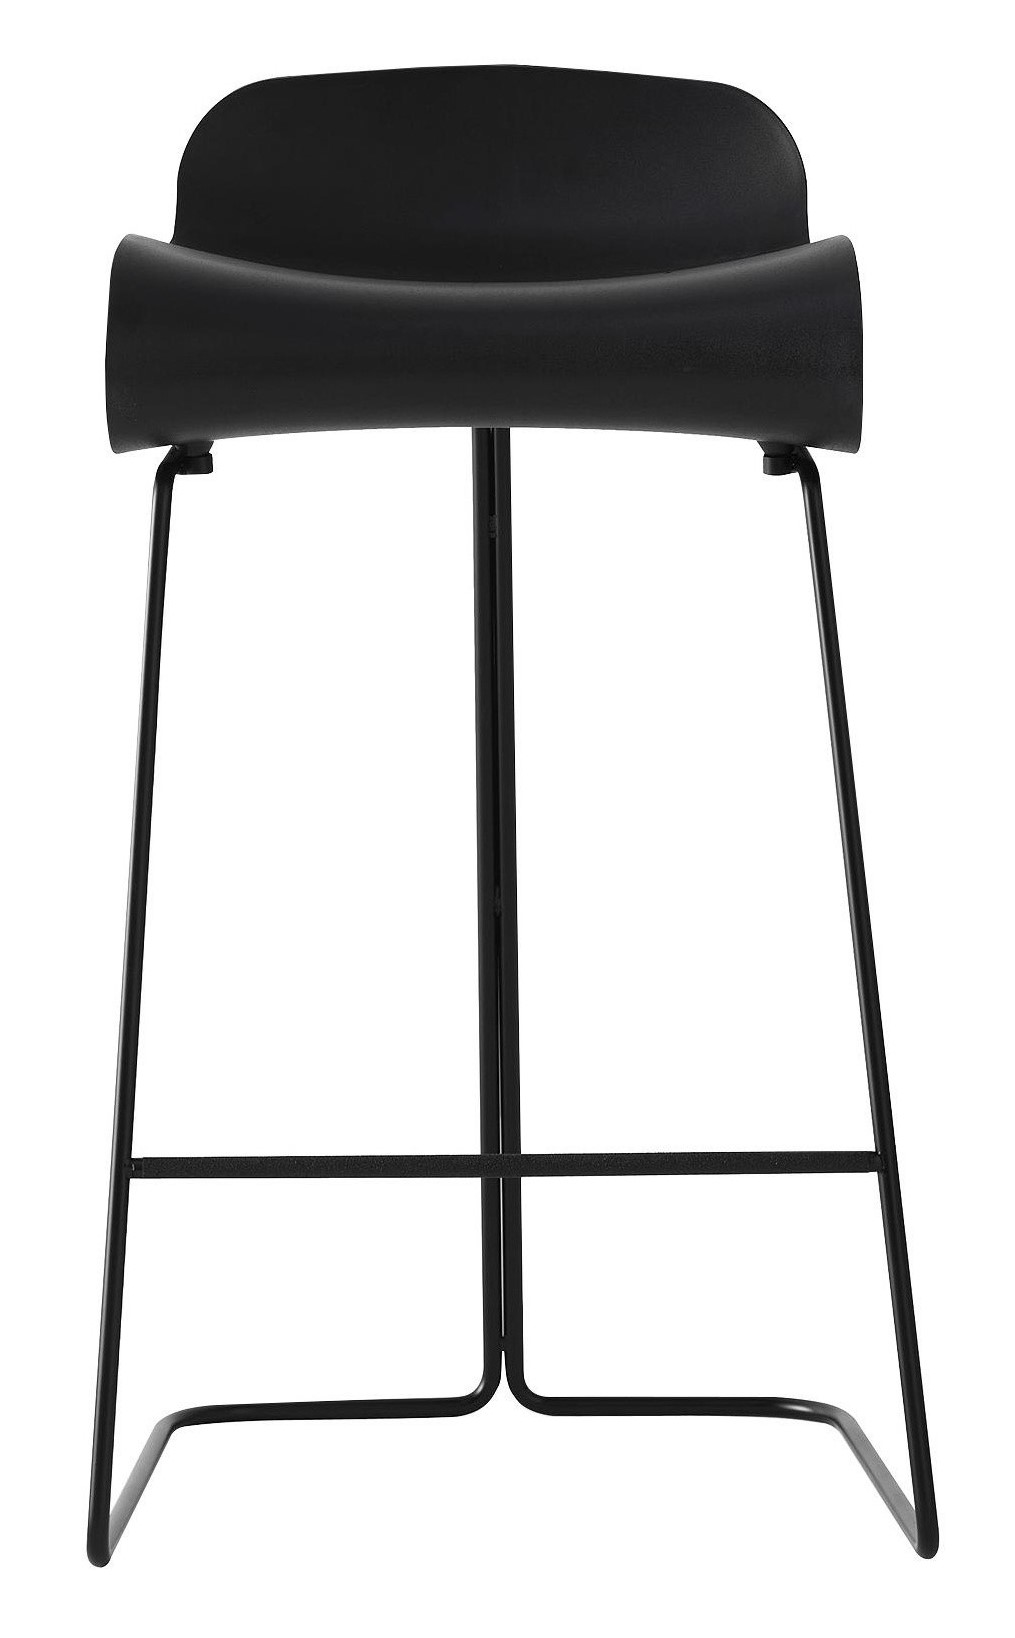 Product Image BCN STOOL Wireframe